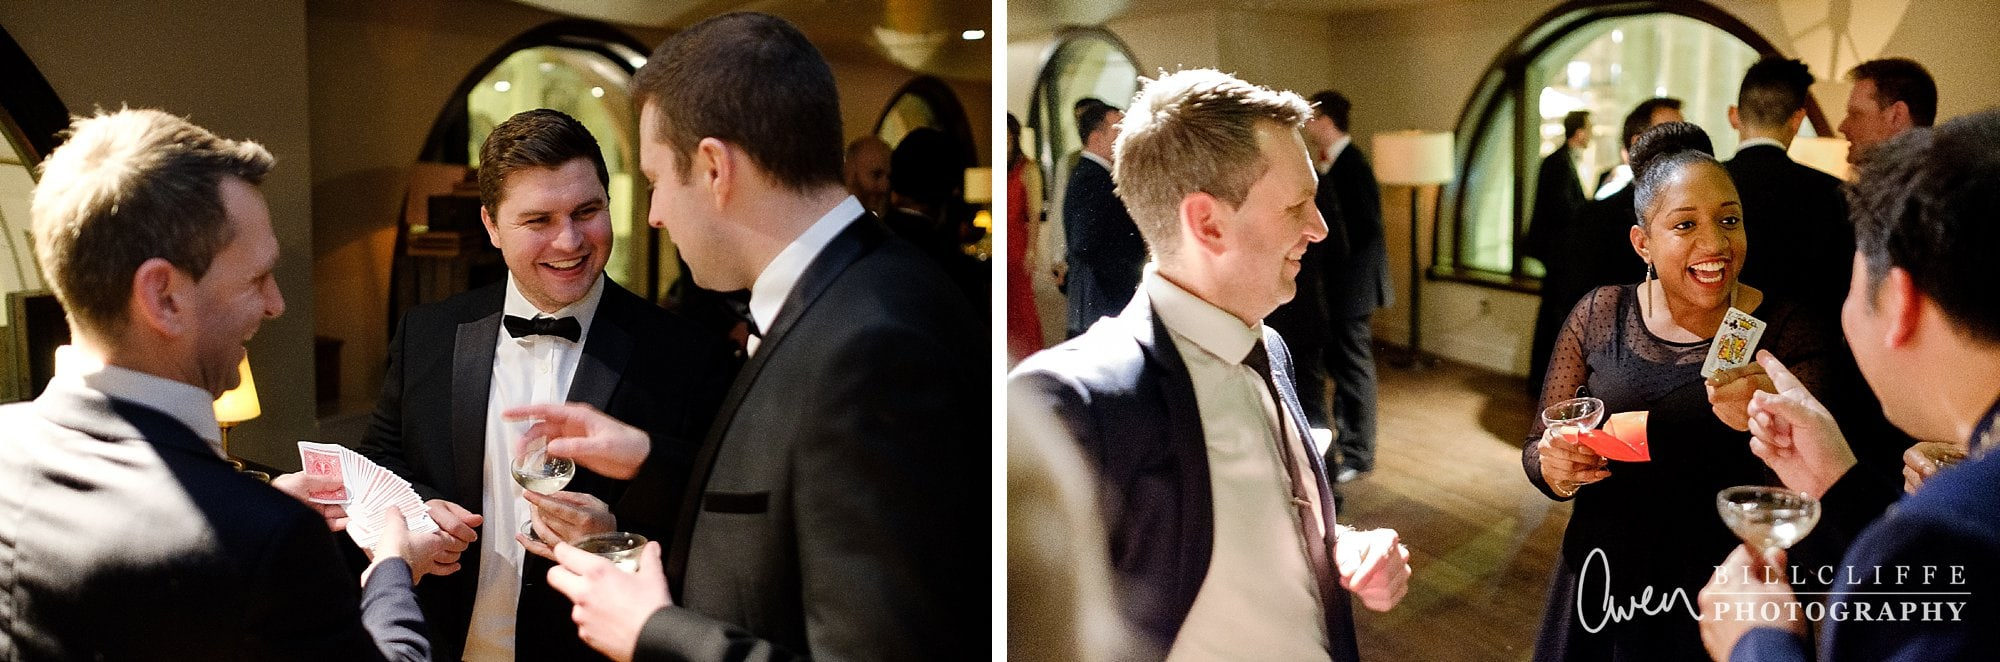 london wedding photographer magician lee smith 018 - Event Entertainer Spotlight: Lee Smith, Walkabout Magician